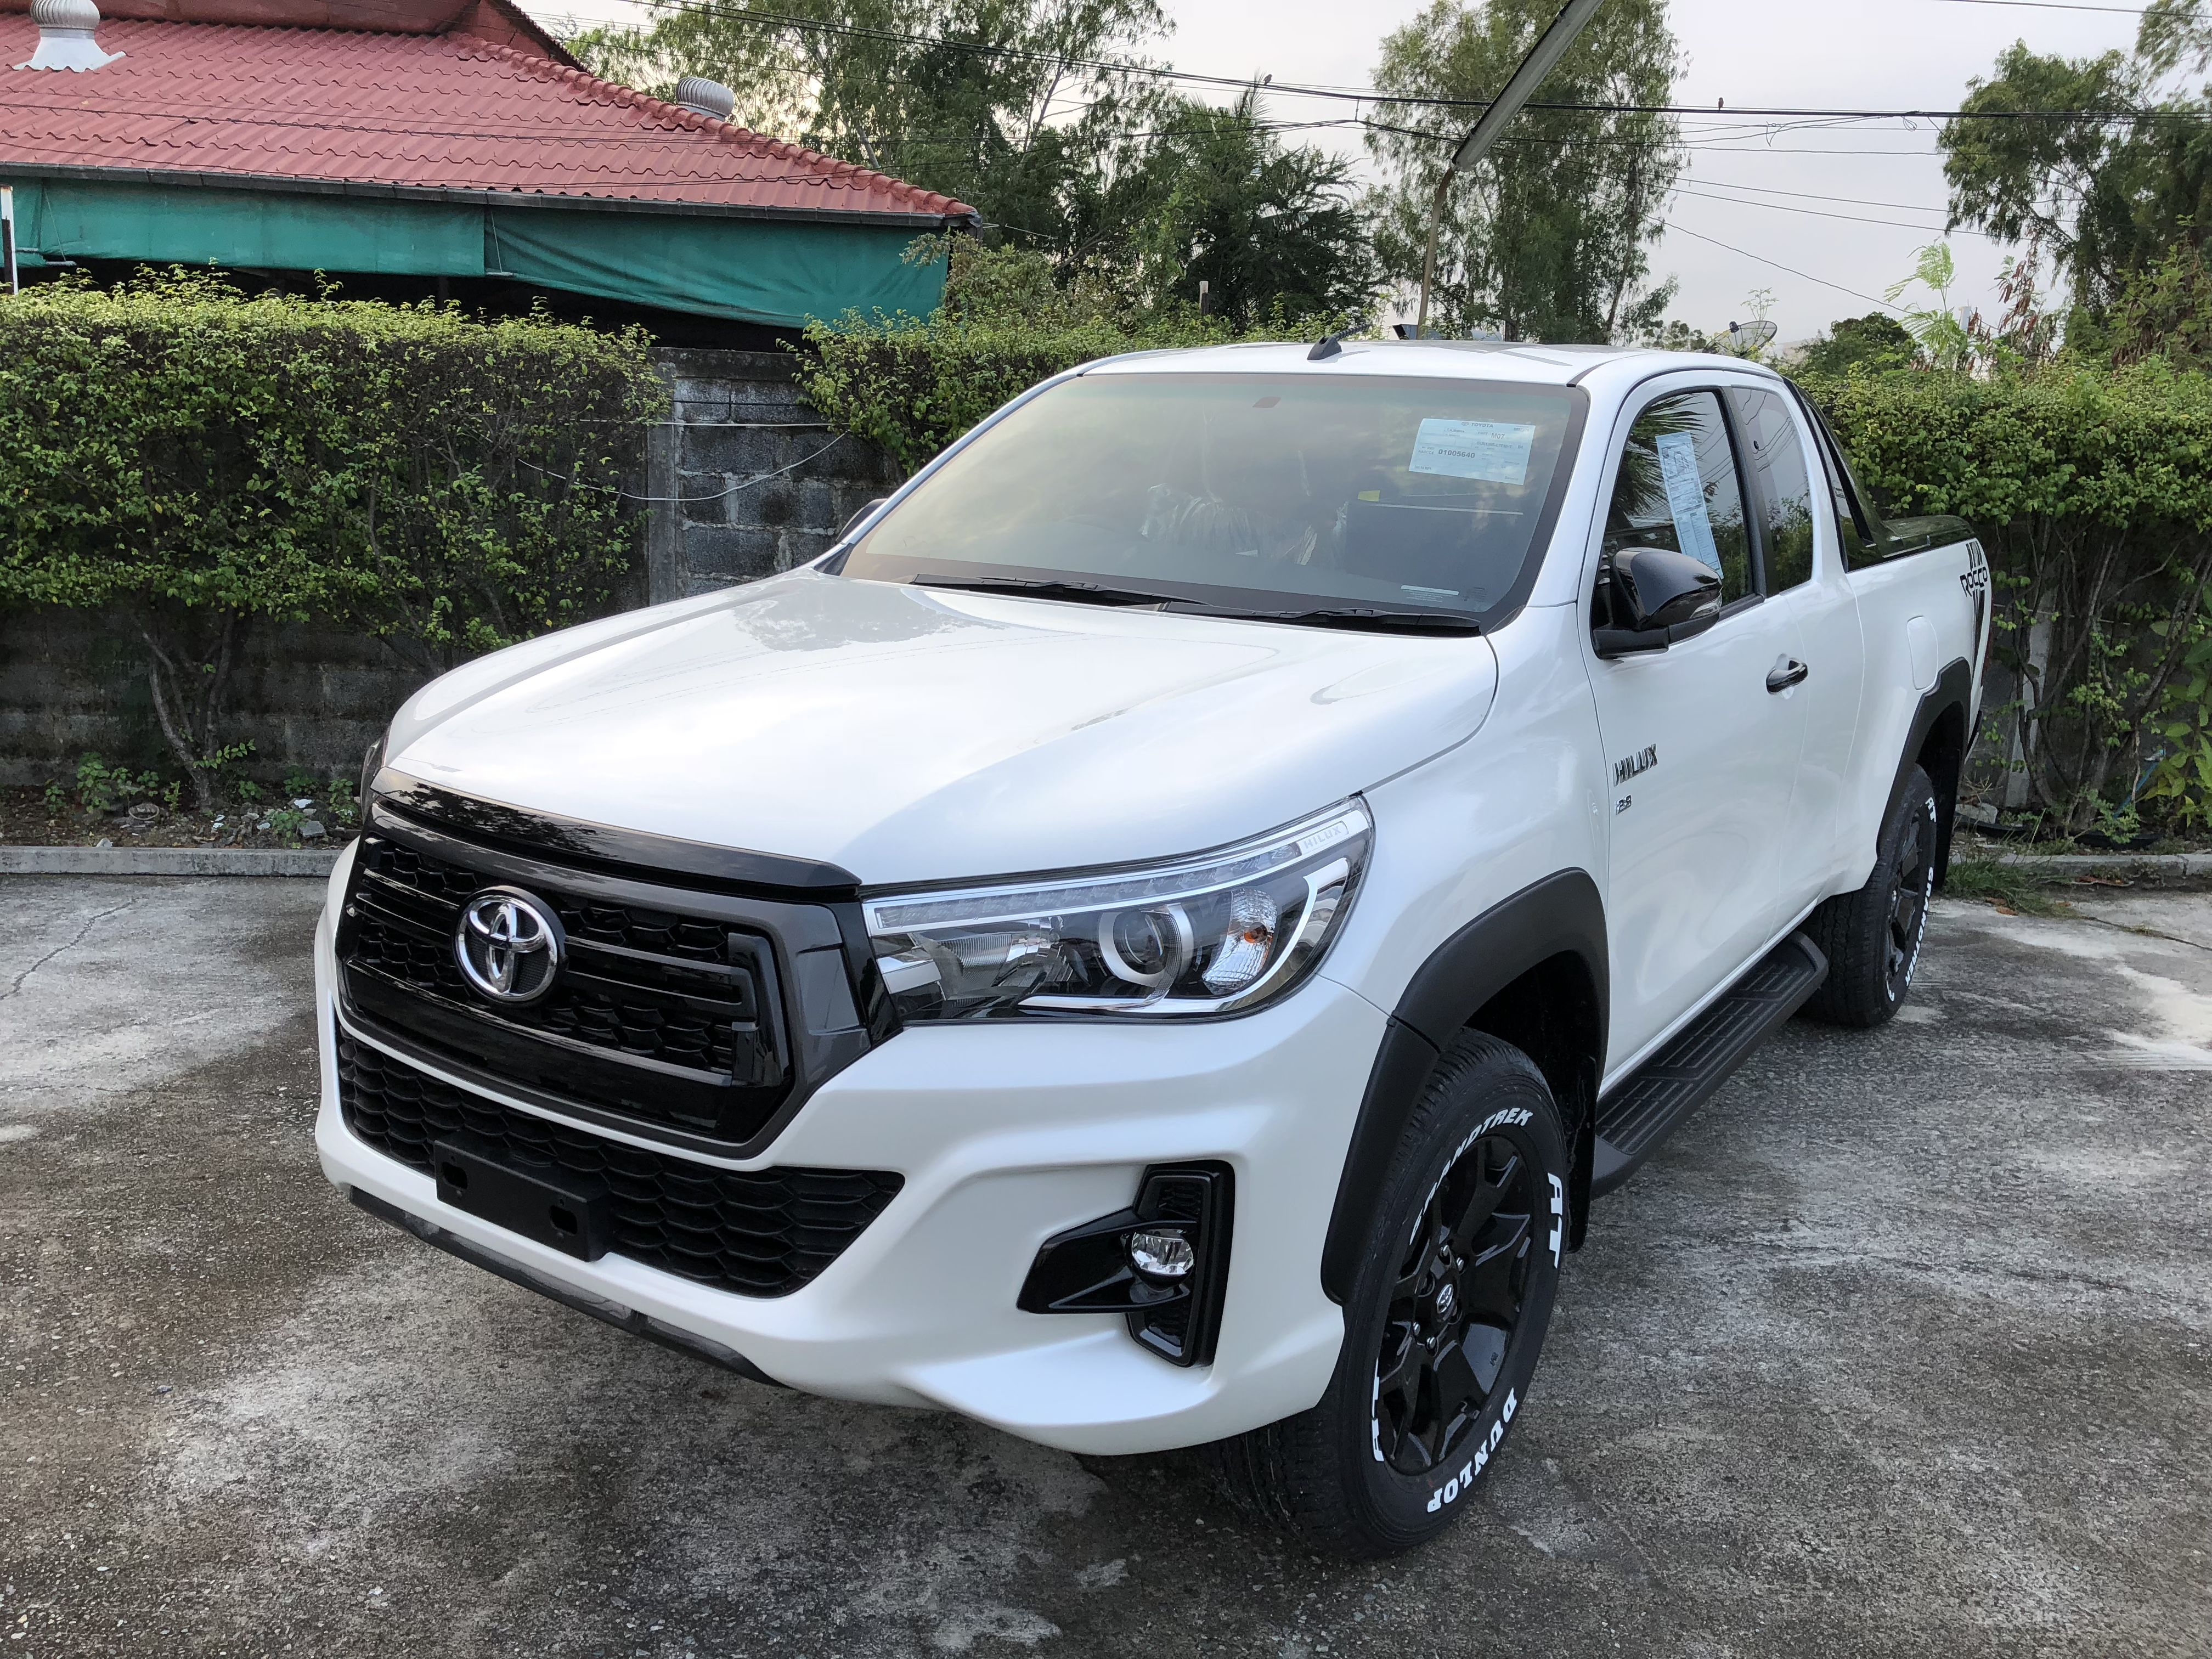 2018 Toyota Hilux Rocco 2 8 Extra Cab Toyotahilux Hiluxrevo Rocco Toyota Hilux Toyota Toyota Cars